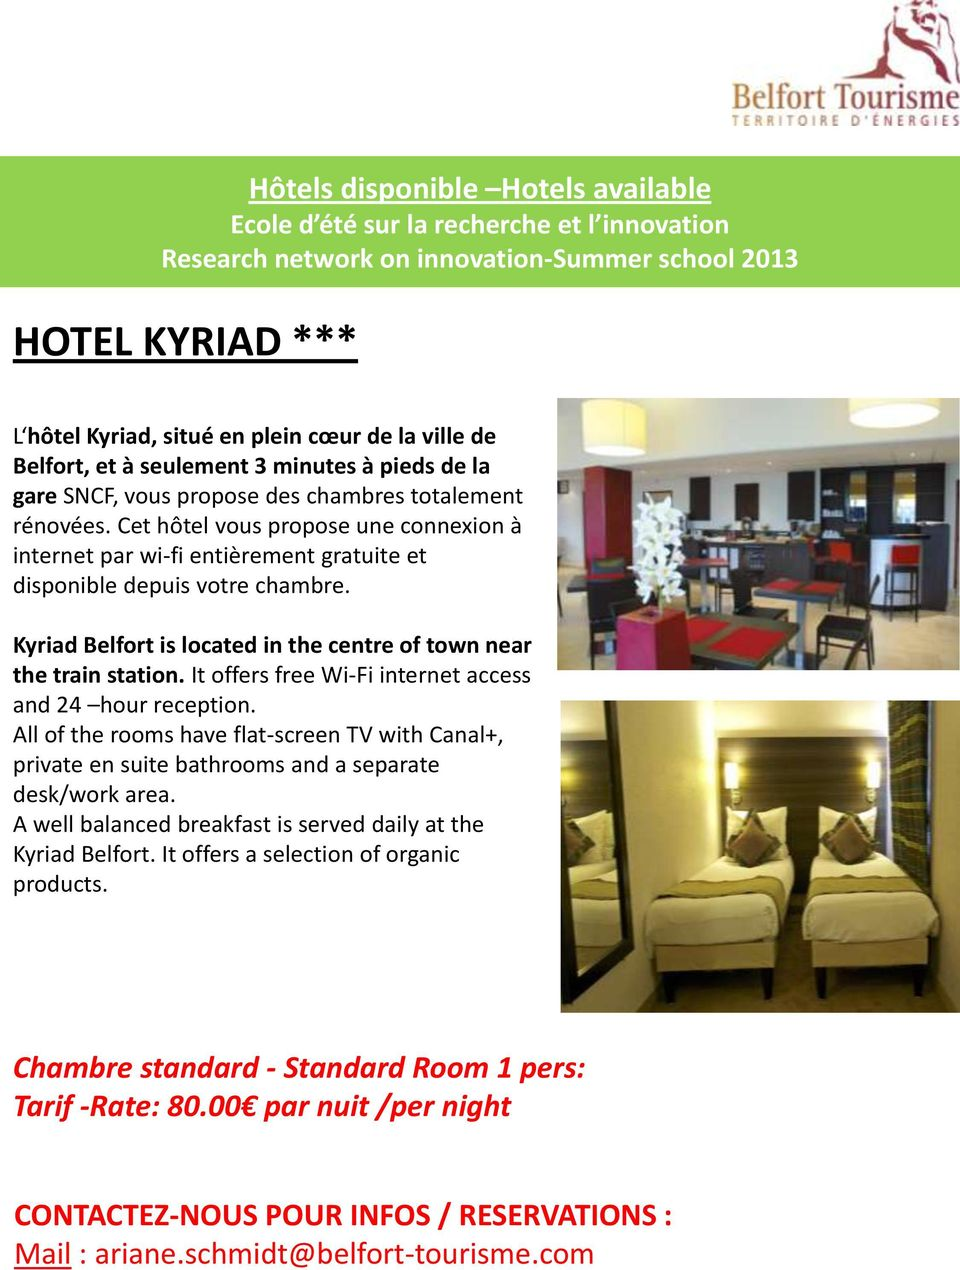 Kyriad Belfort is located in the centre of town near the train station. It offers free Wi-Fi internet access and 24 hour reception.